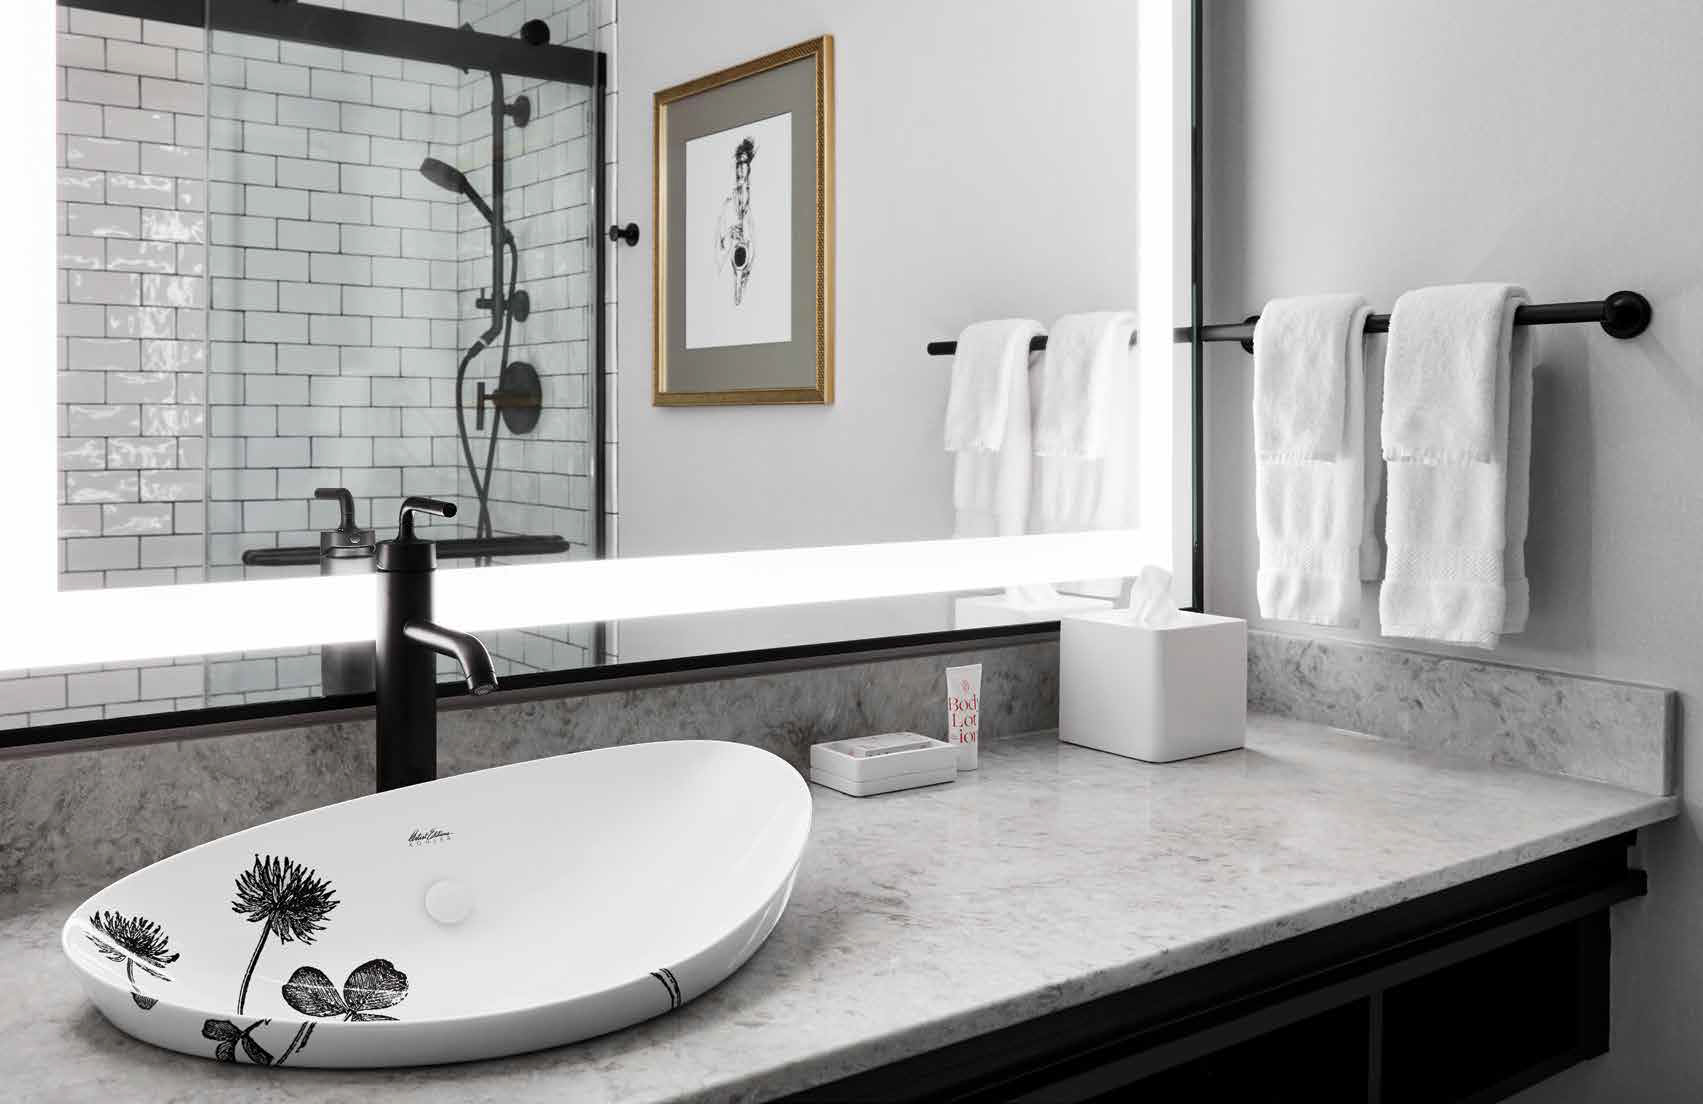 Partnering with Kohler on a full bathroom specification—including Matte Black accessories and small-batch custom Artist Editions sinks—provided the Saint Kate design team an artful way to underscore their project with a sense of style and distinction.